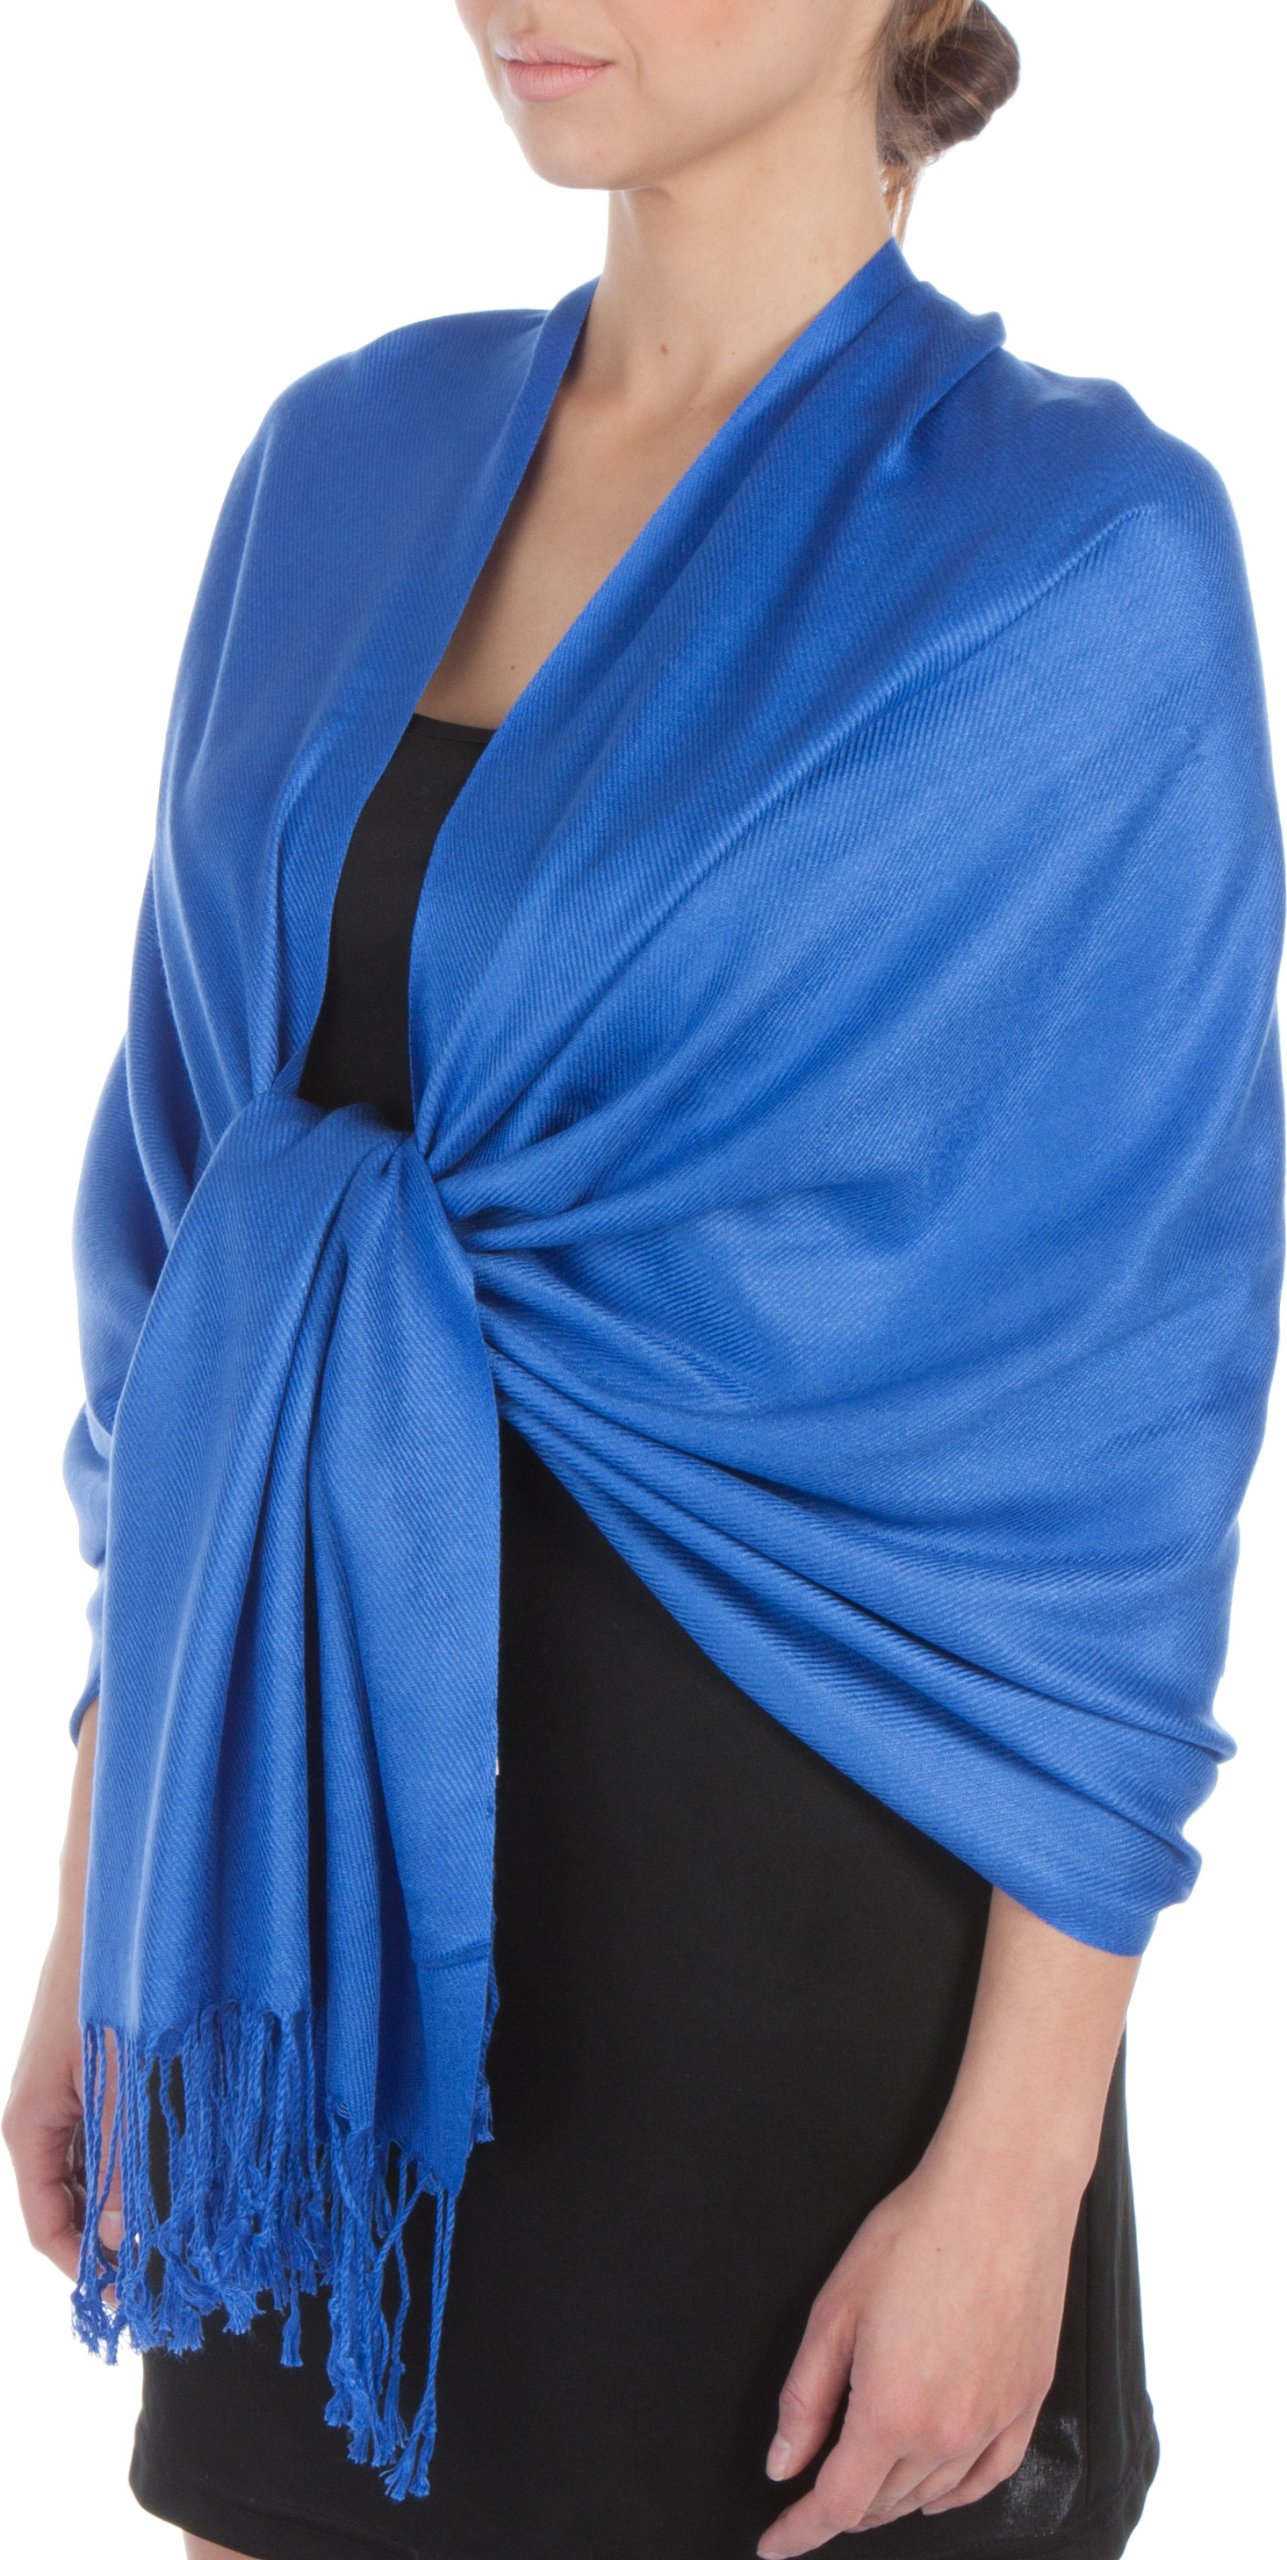 Sakkas Large Soft Silky Pashmina Shawl Wrap Scarf Stole in Solid Colors- Royal Blue